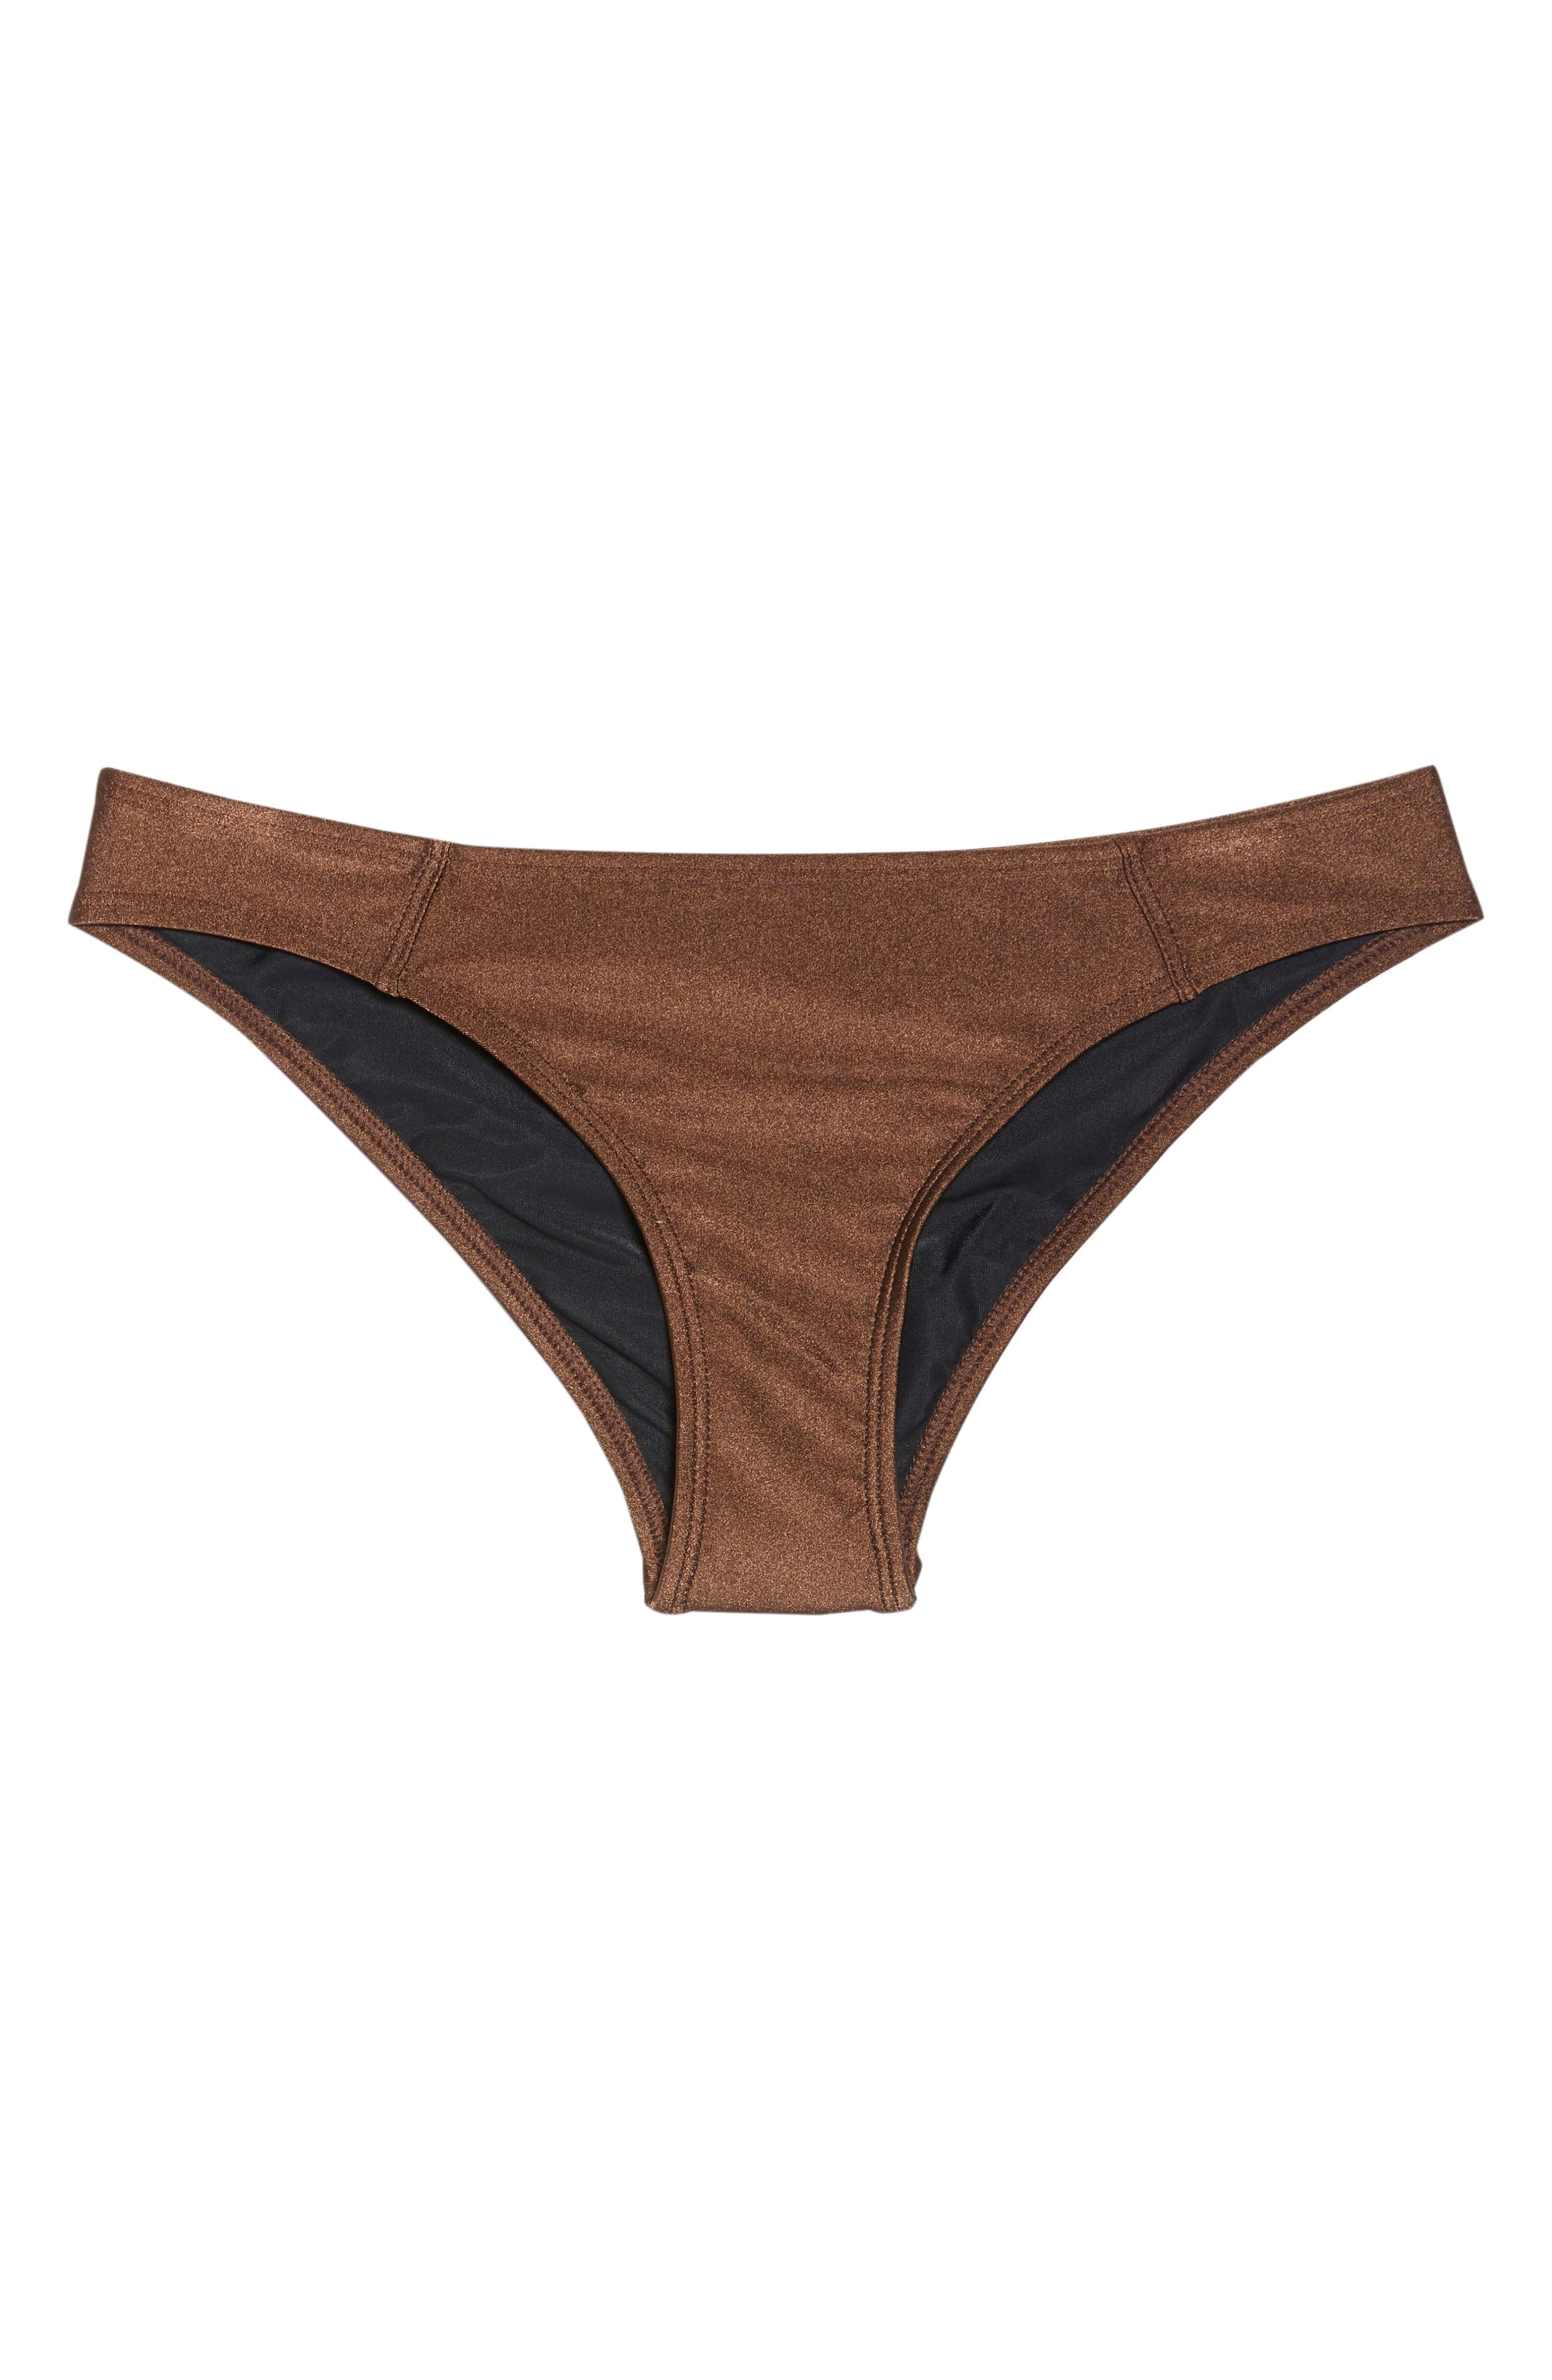 Banded Hipster Bikini Bottoms,                             Alternate thumbnail 6, color,                             Chocolate Glint